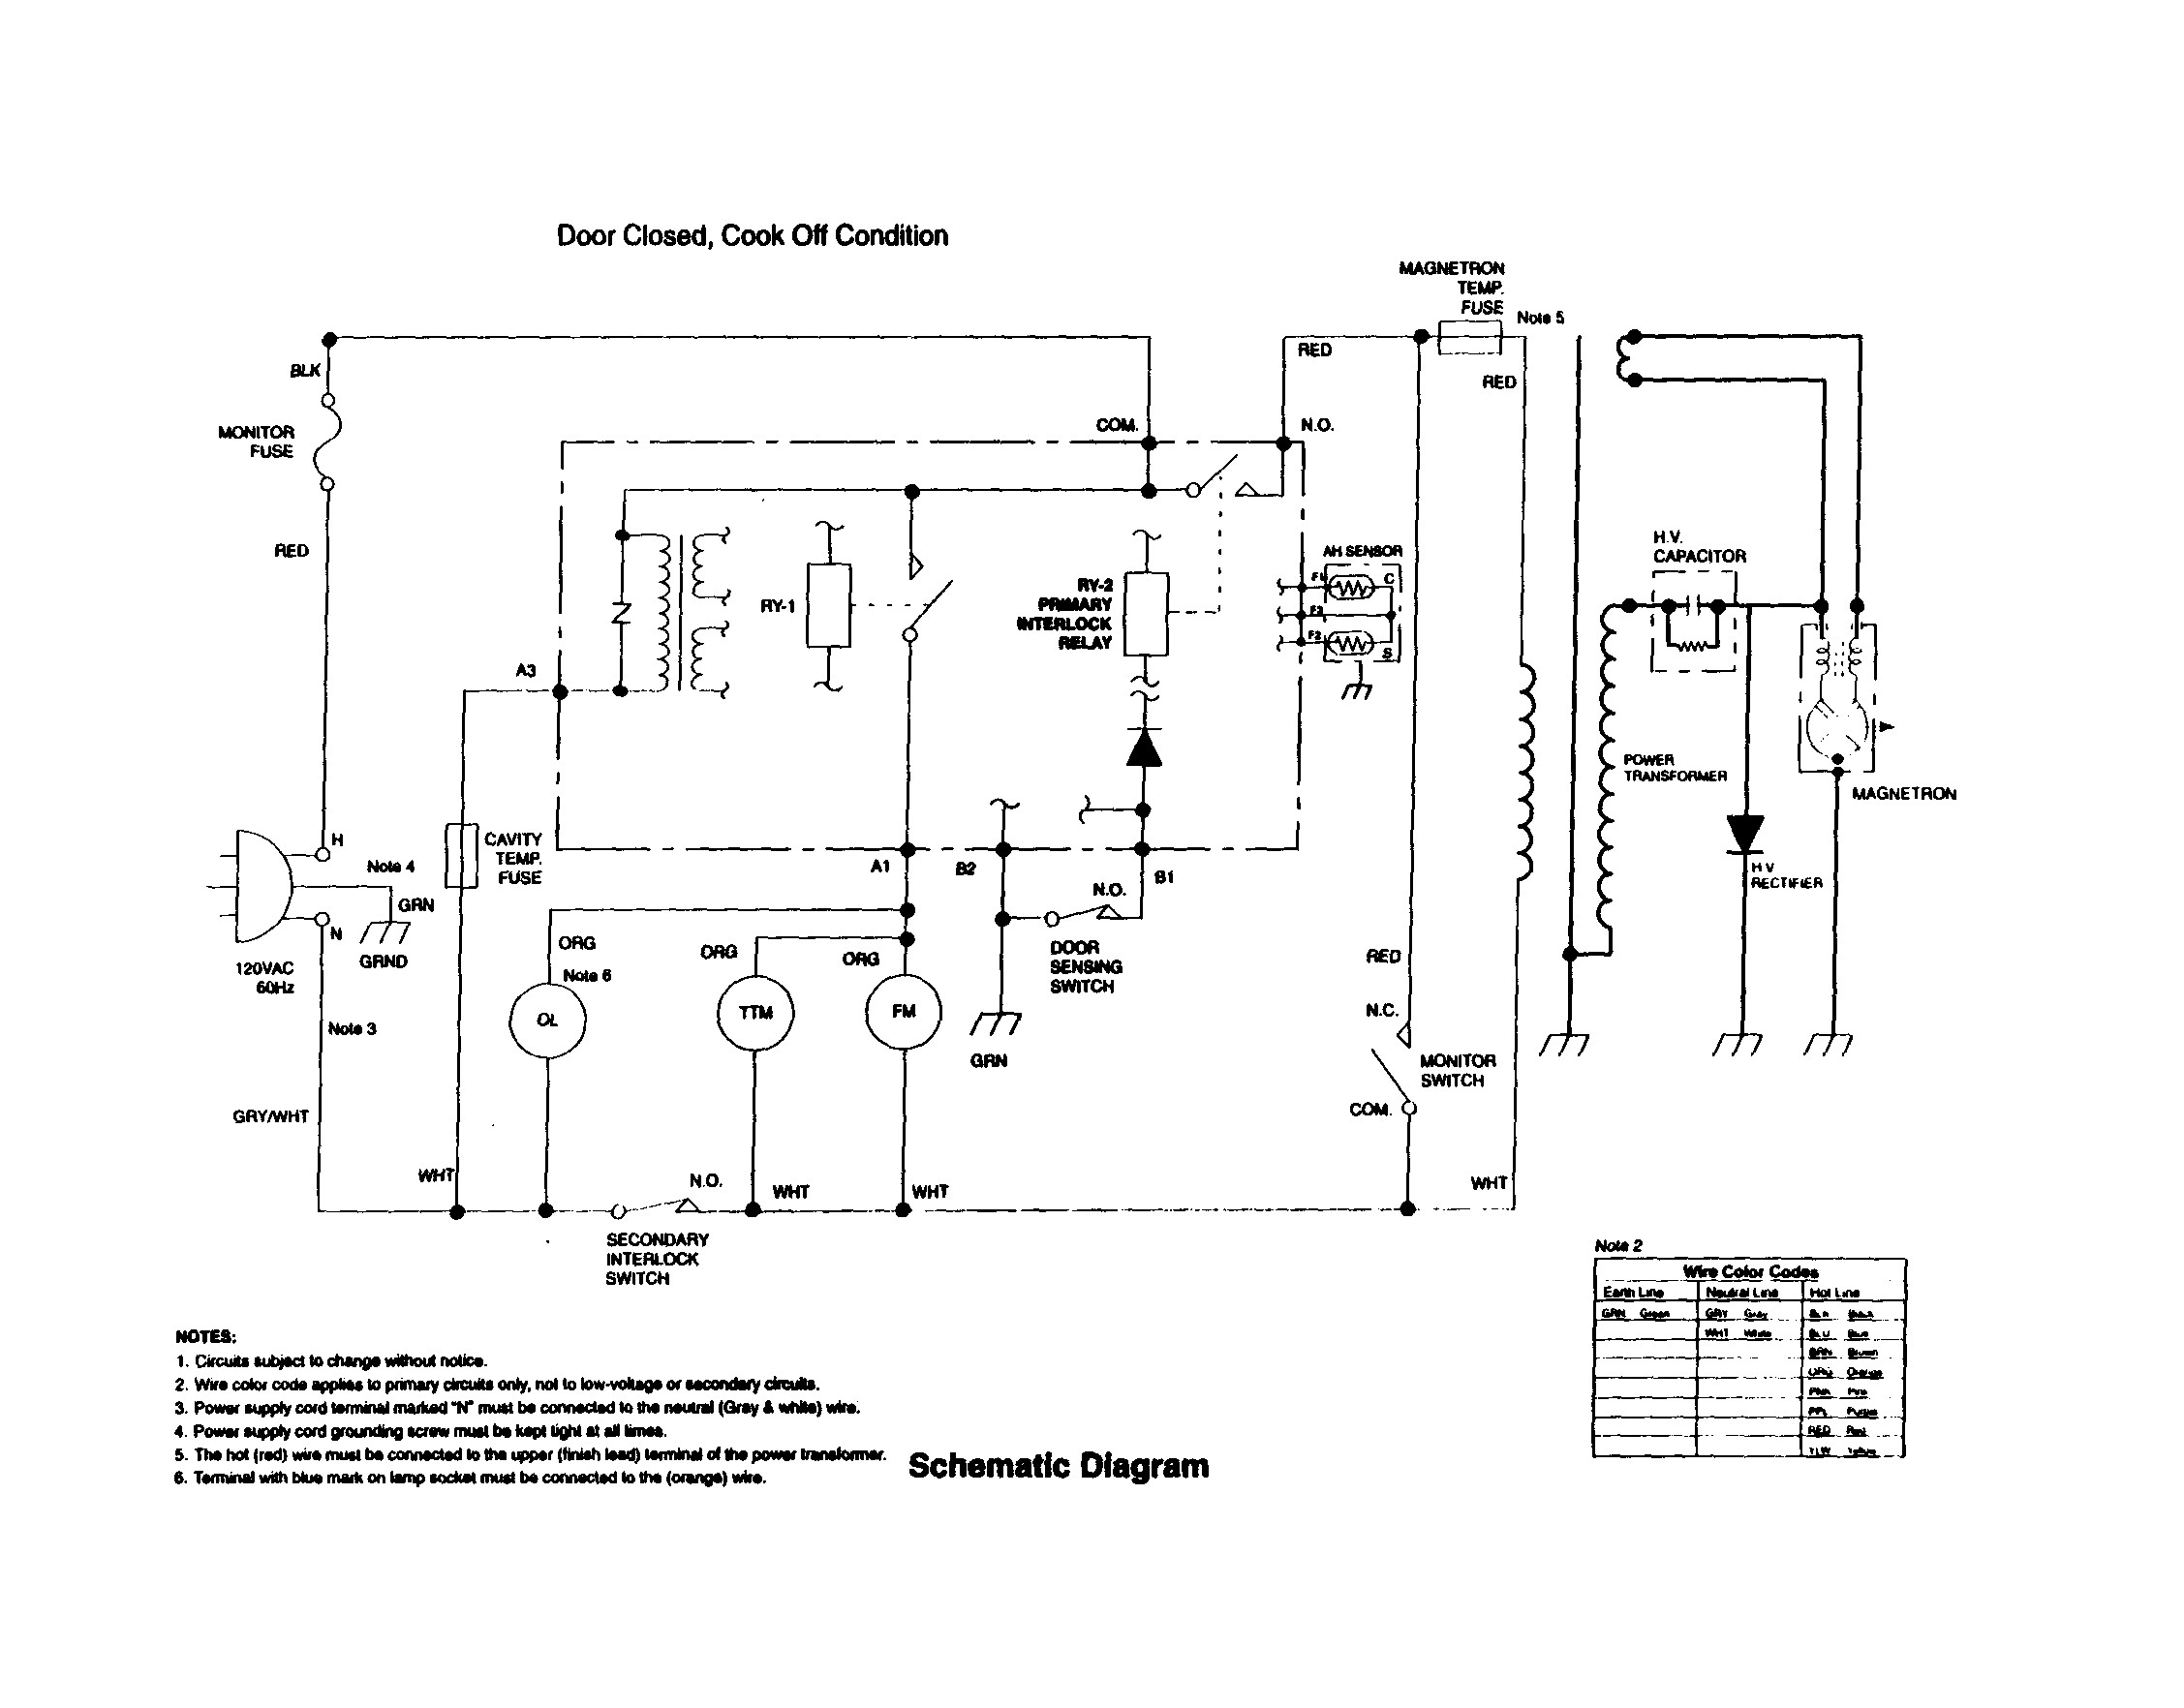 Torque Converter Diagram 700r4 Wiring Diagram Tc 70 Gm torque Converter Lock Up Sc 1 St Fine Of Torque Converter Diagram